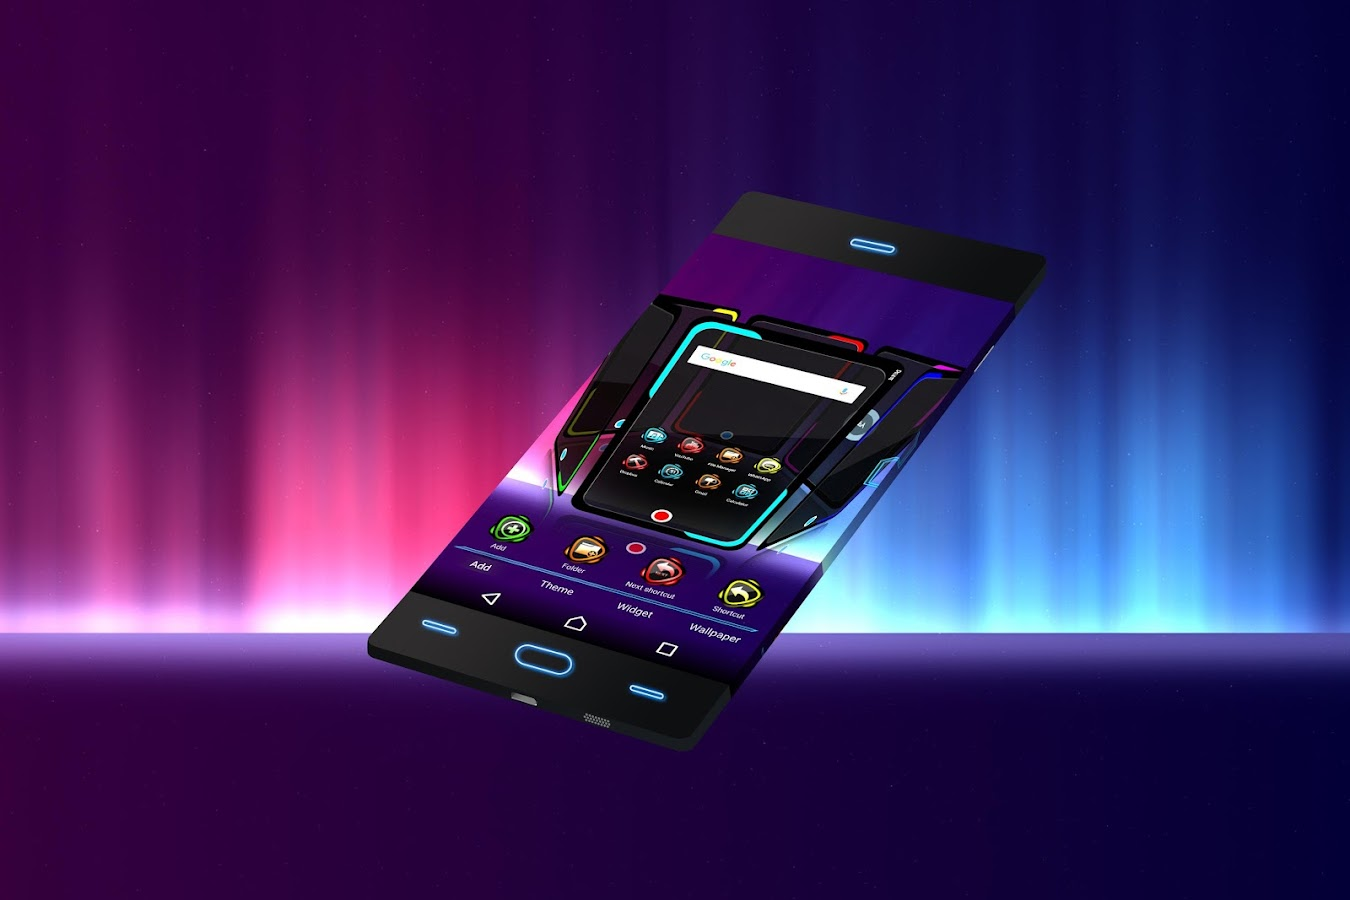 Phone Download Free Themes For Android Phones free theme for android shine3d apps on google play screenshot